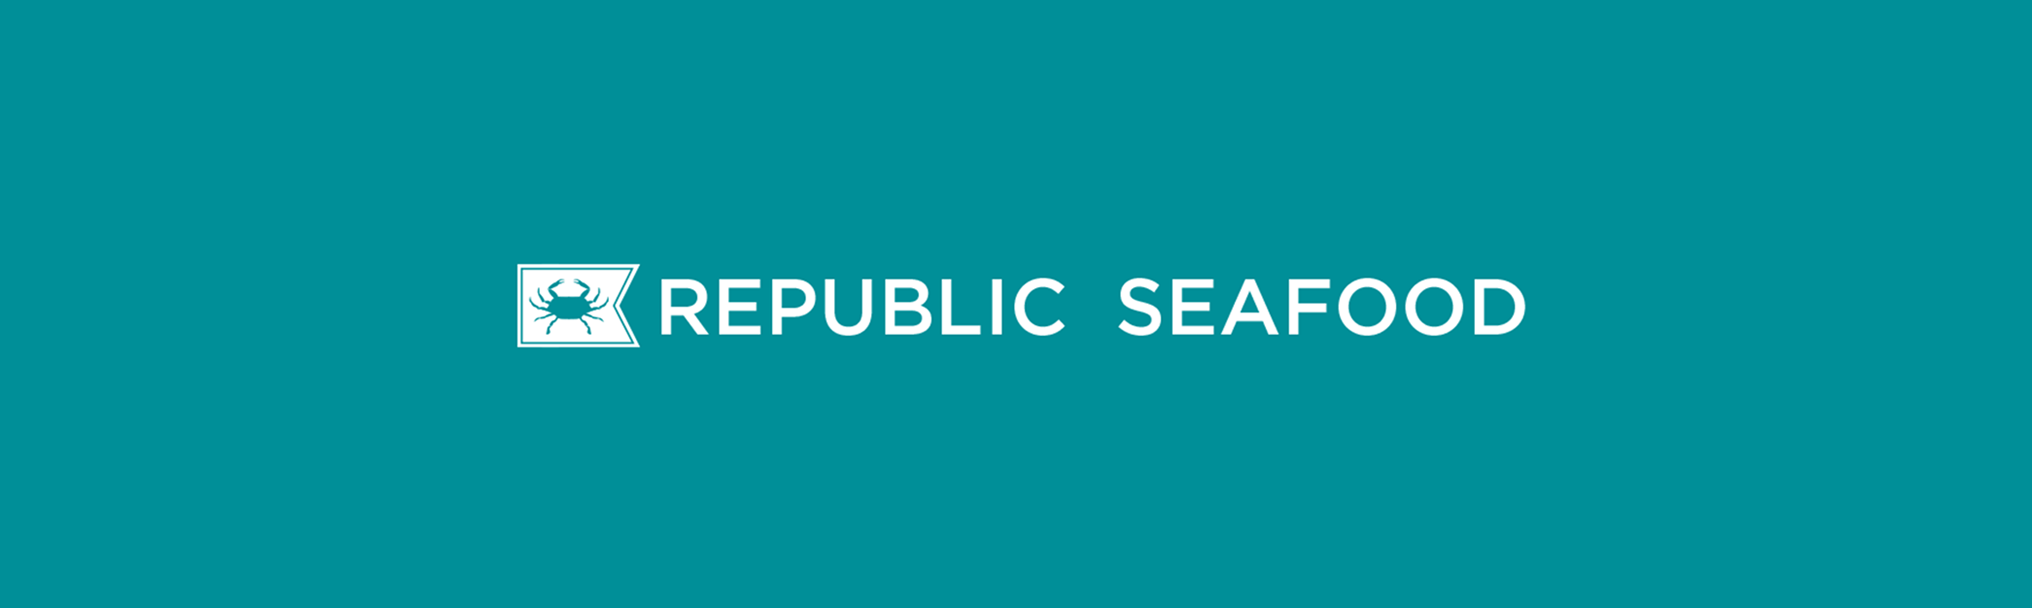 republic seafood.png